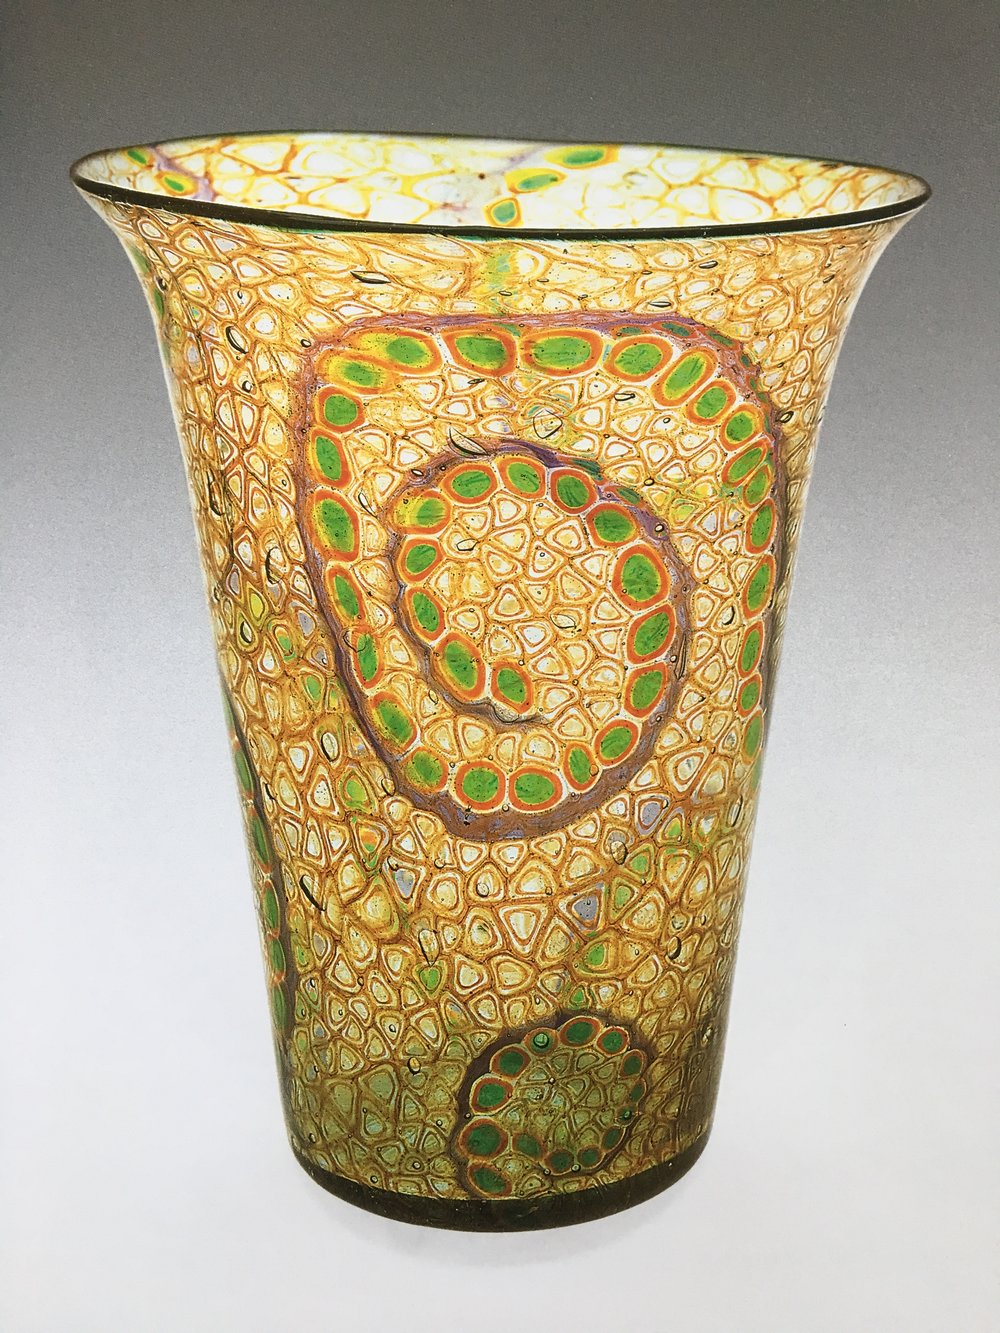 Anna Åkerdahl, large Mosaico vase for Ferro Toso, 1920, in the Weisman collection.